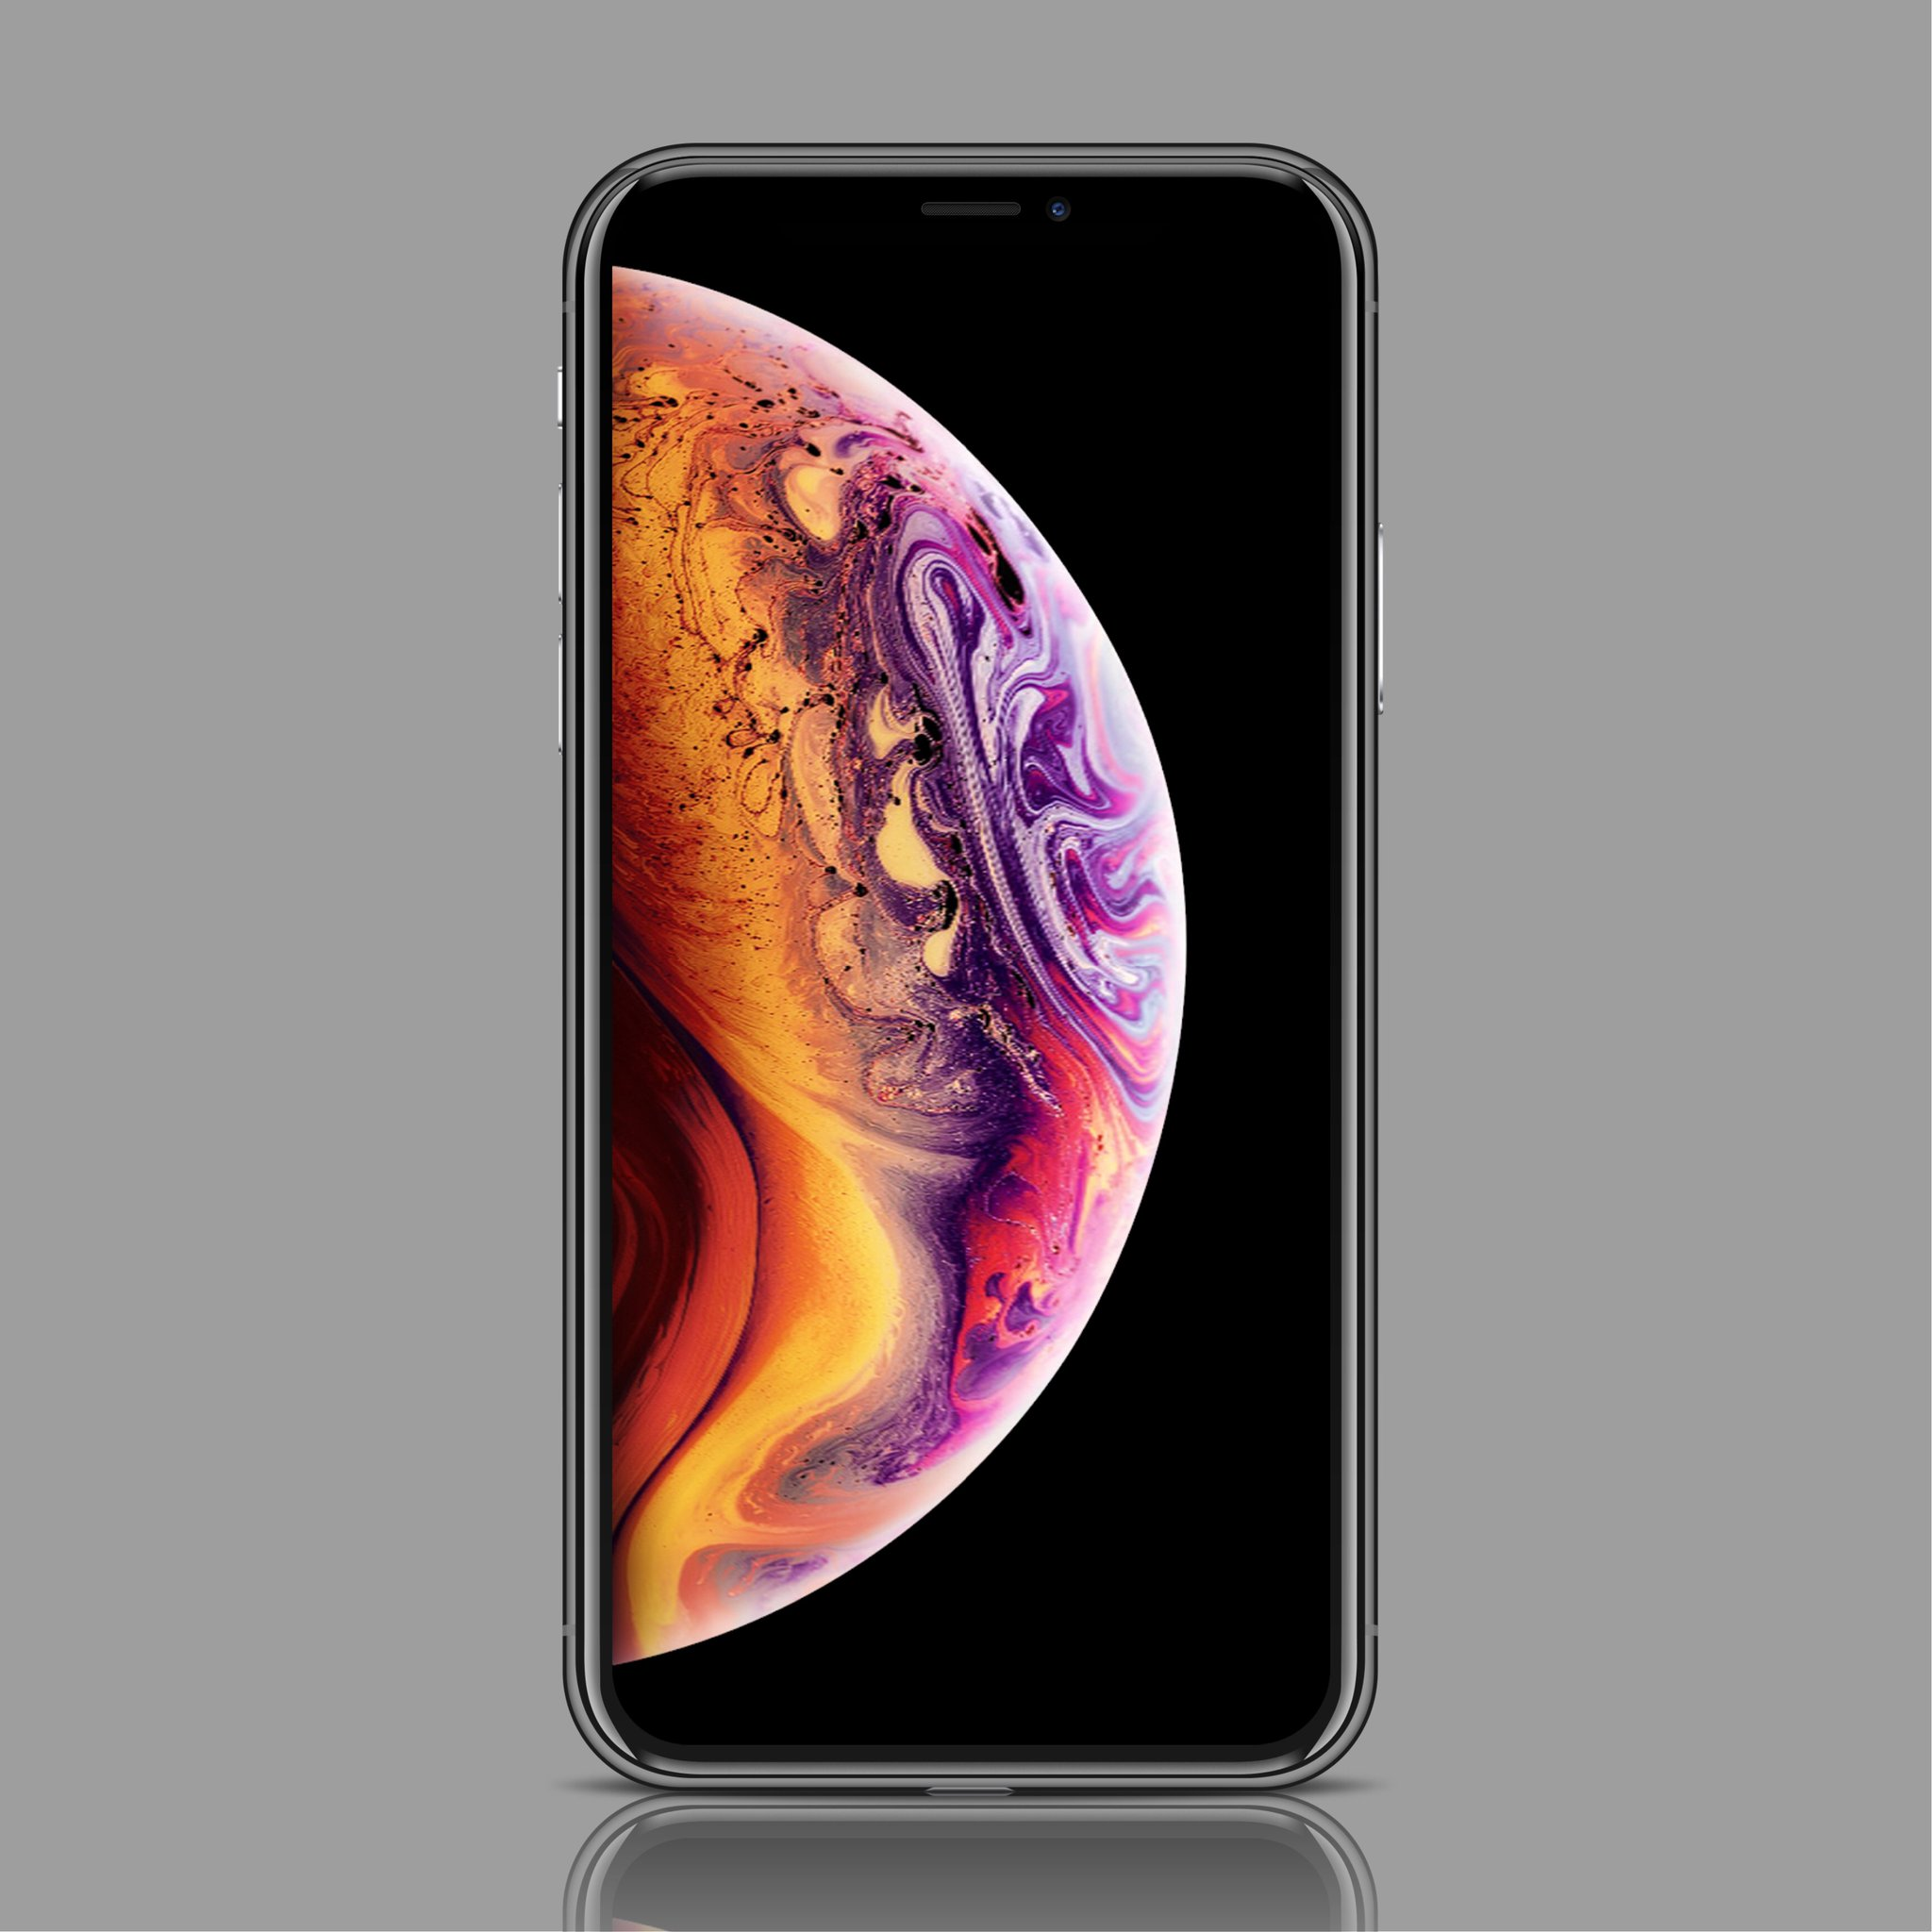 download iphone xs marketing wallpaper for any iphone. Black Bedroom Furniture Sets. Home Design Ideas